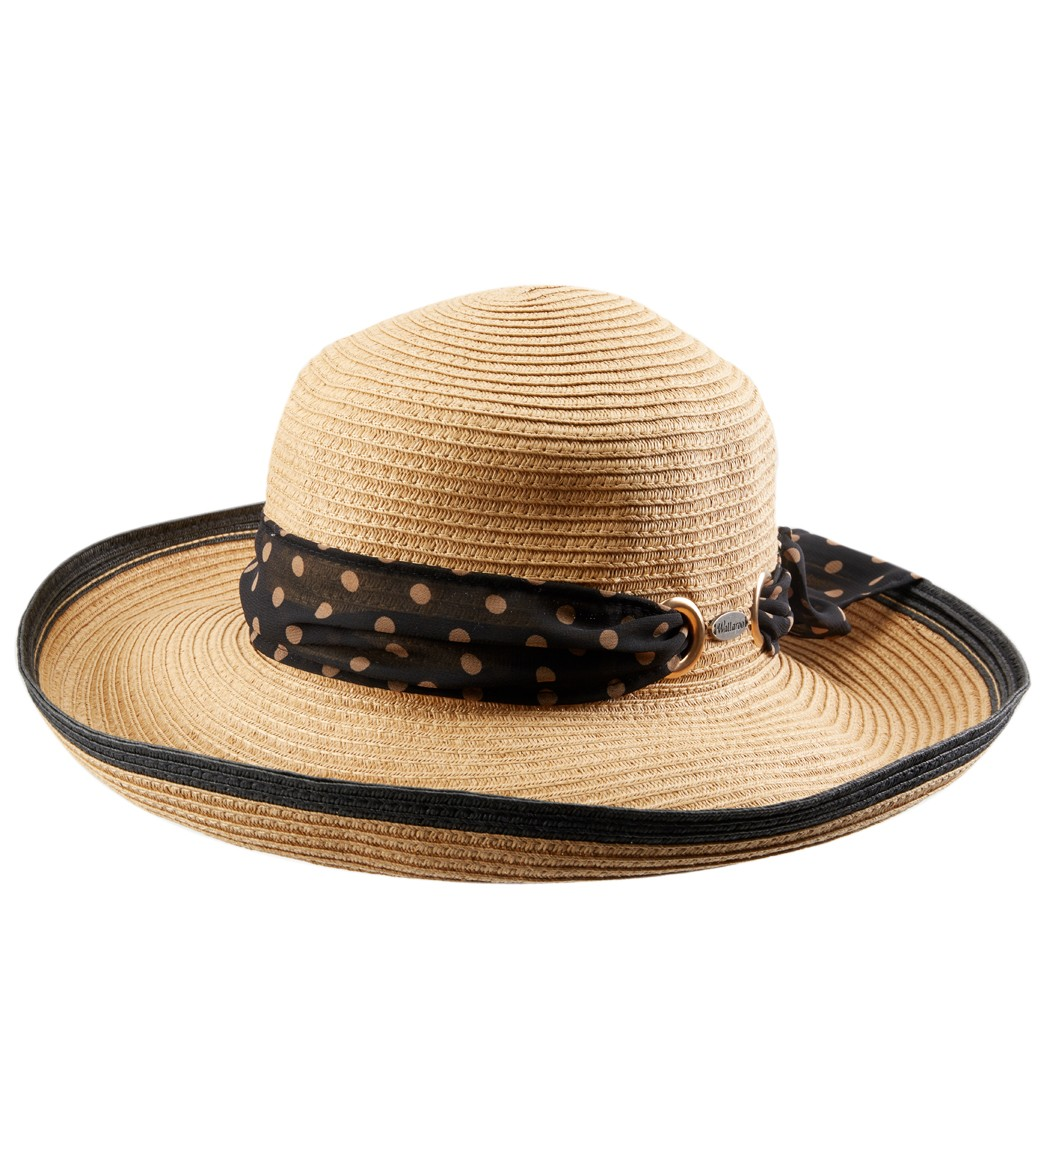 9034a7852db71 Wallaroo Women s Julia Sun Hat at SwimOutlet.com